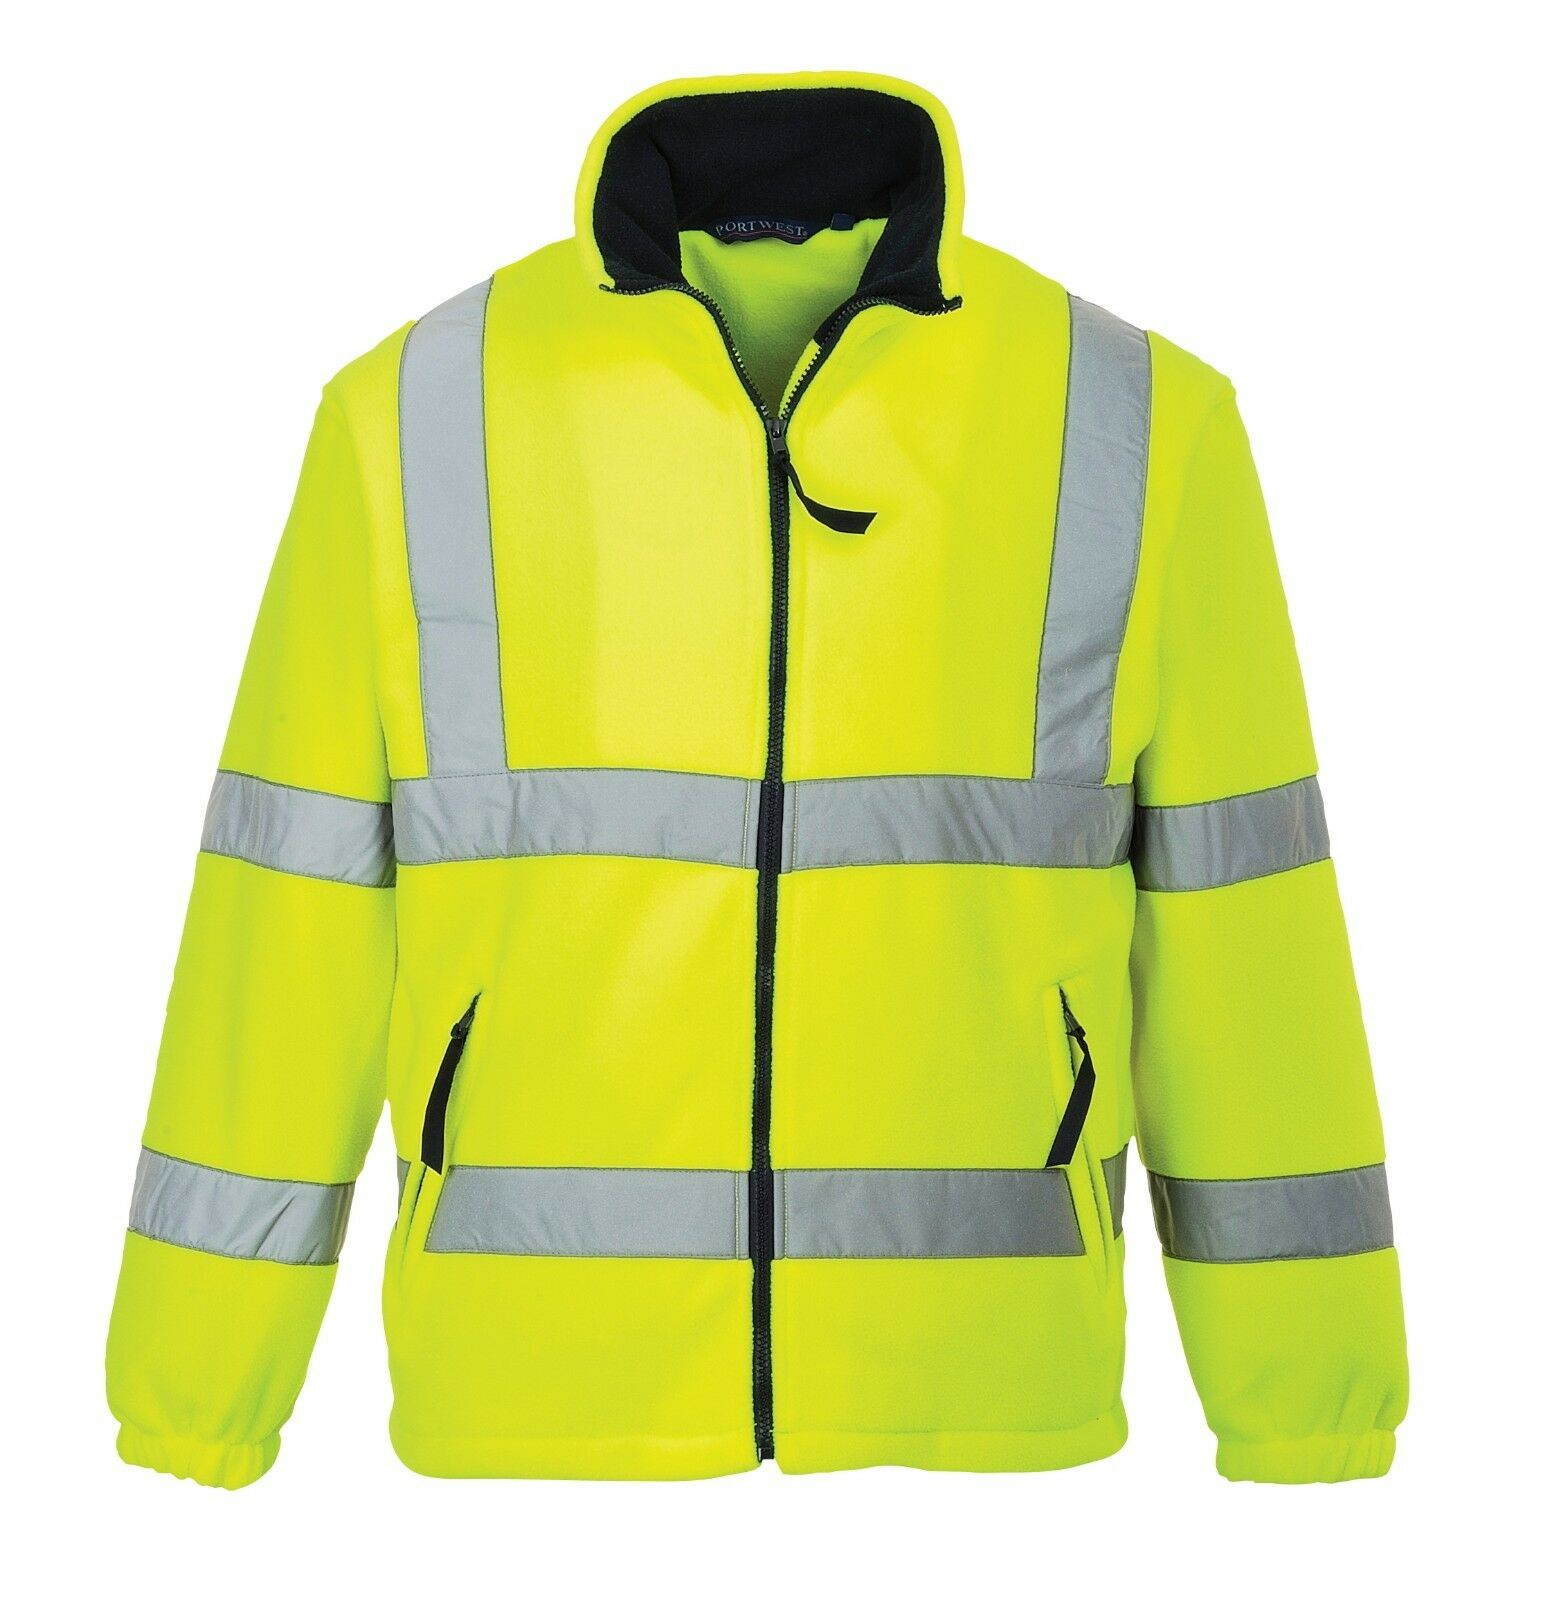 Portwest F300 - Hi-Vis Mesh Lined Fleece